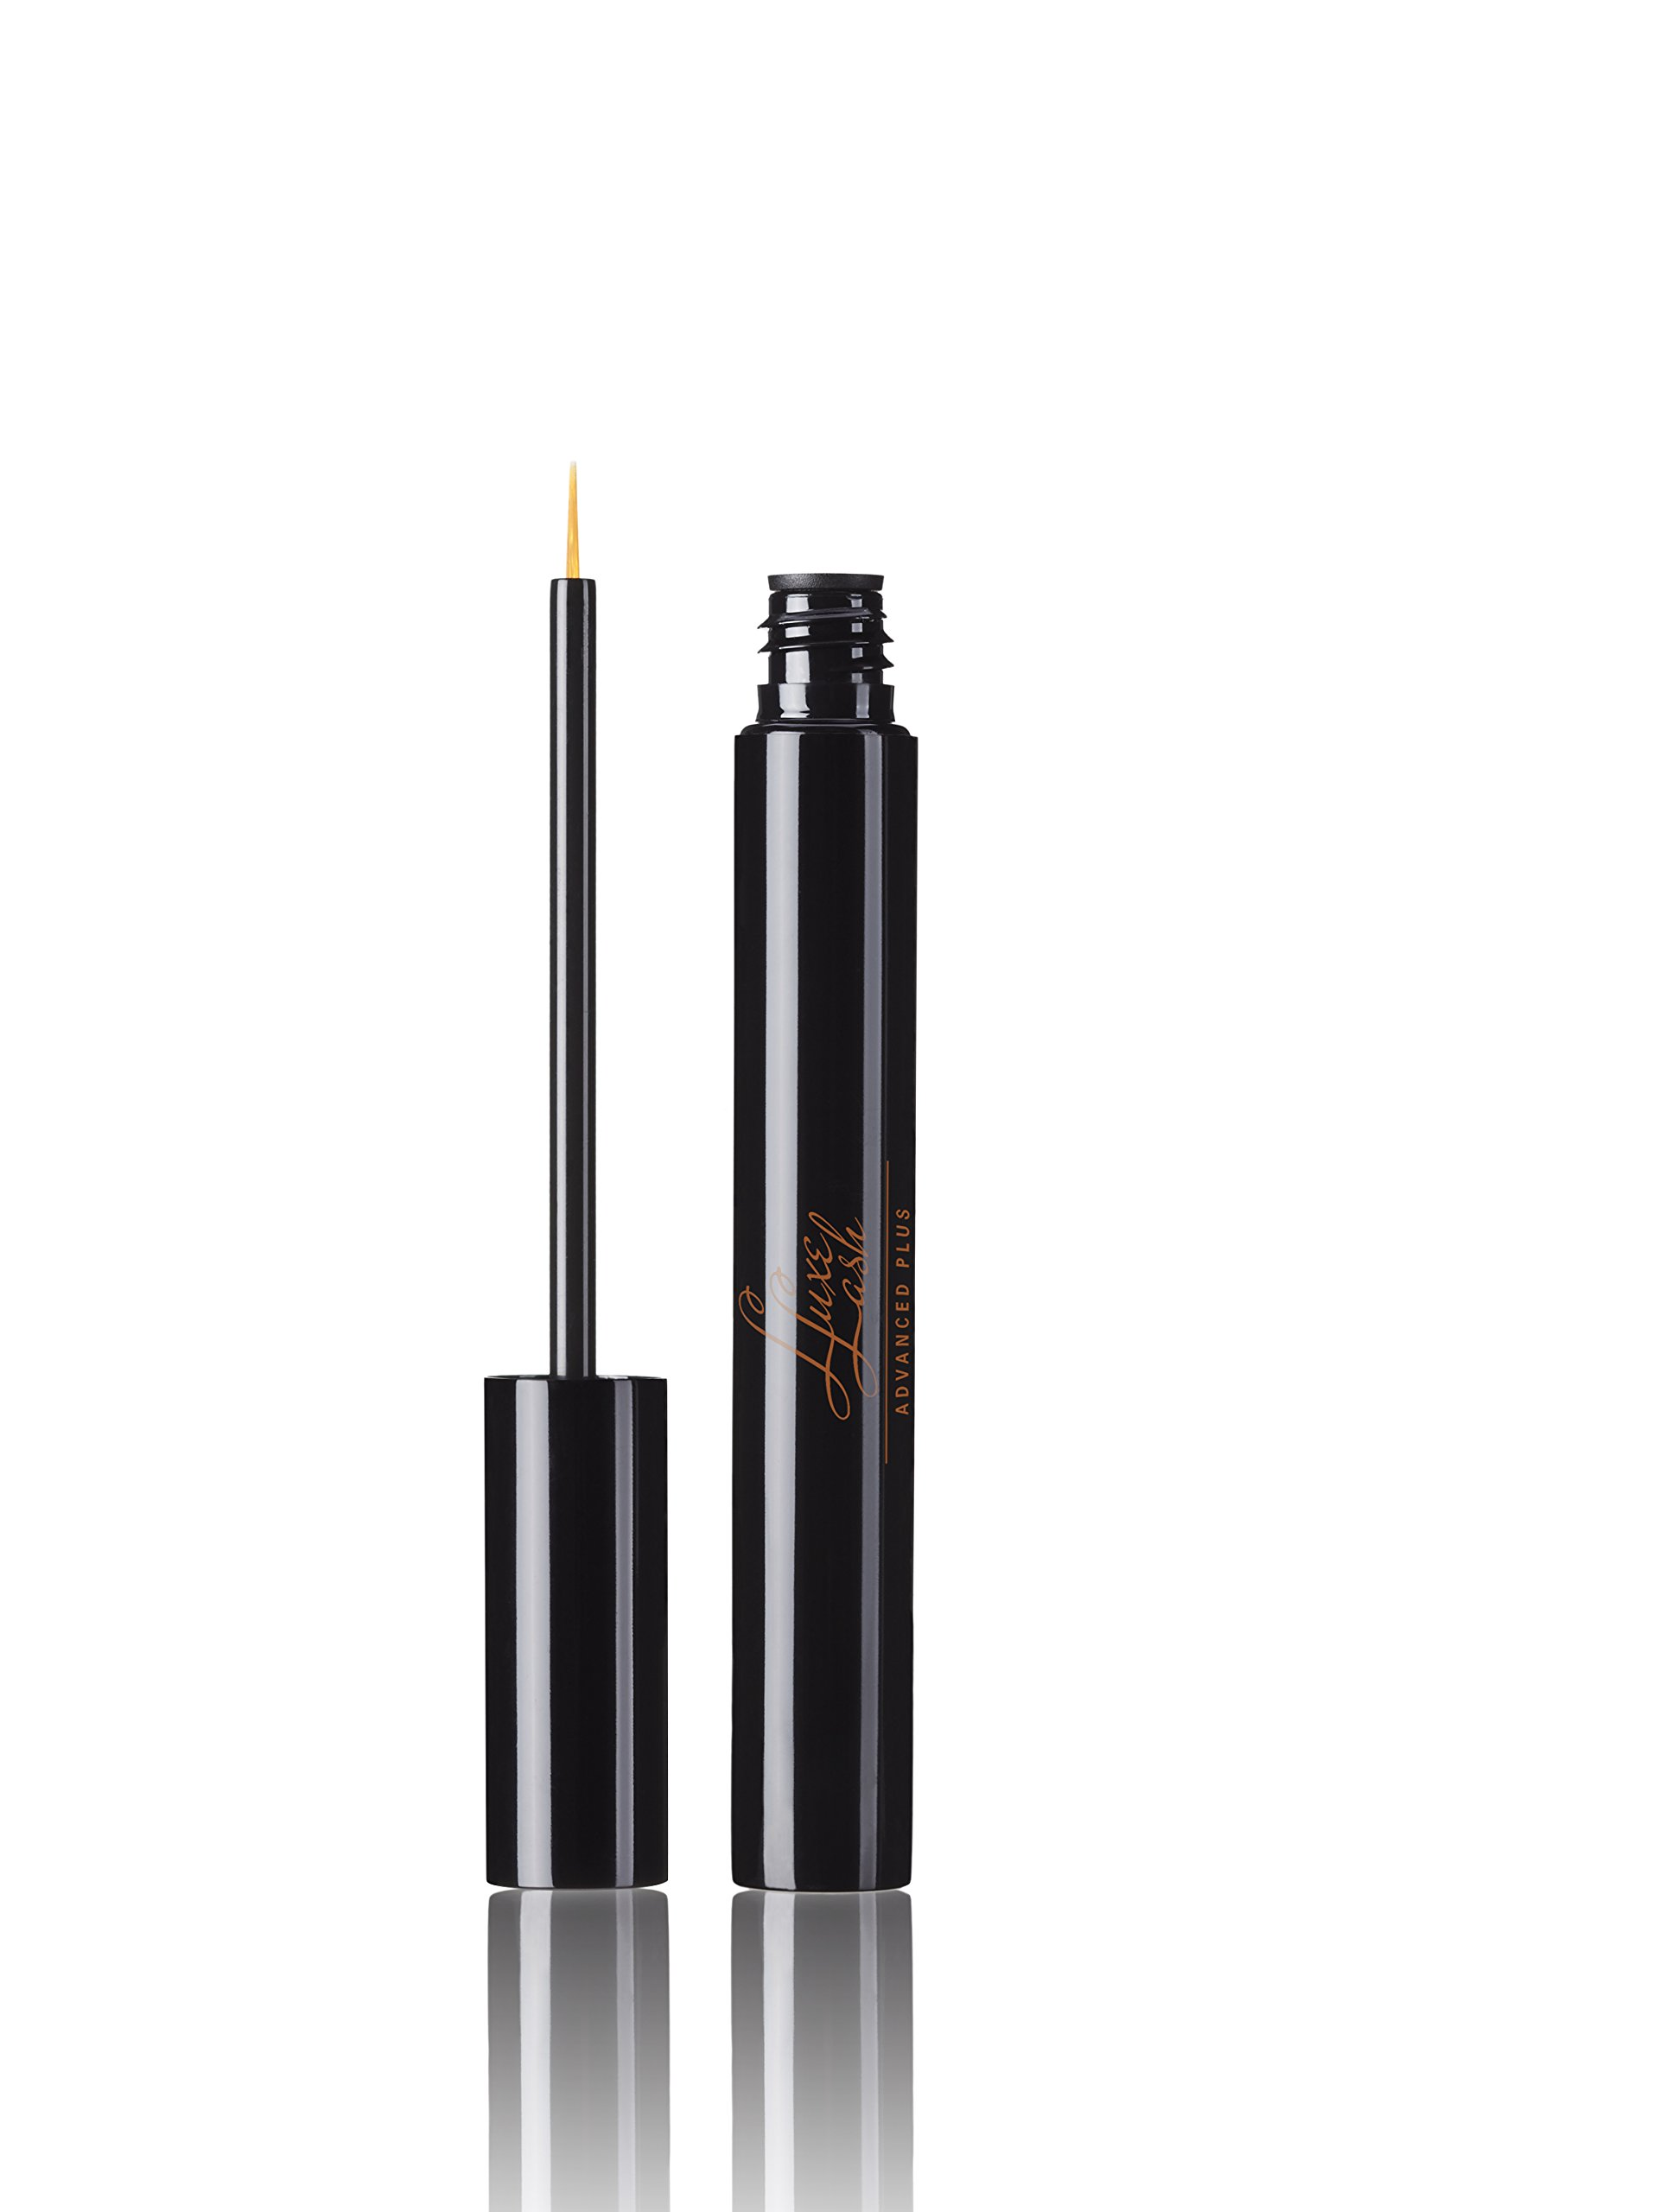 Eyelash enhancer serum 8ml. Luxe Lash Advanced + | Eyelash Booster Serum for eyelashes and eyebrows - Eyelash booster - Eyelash growth serum - Eyelash serum by Luxe Lash by Lescale (Image #7)